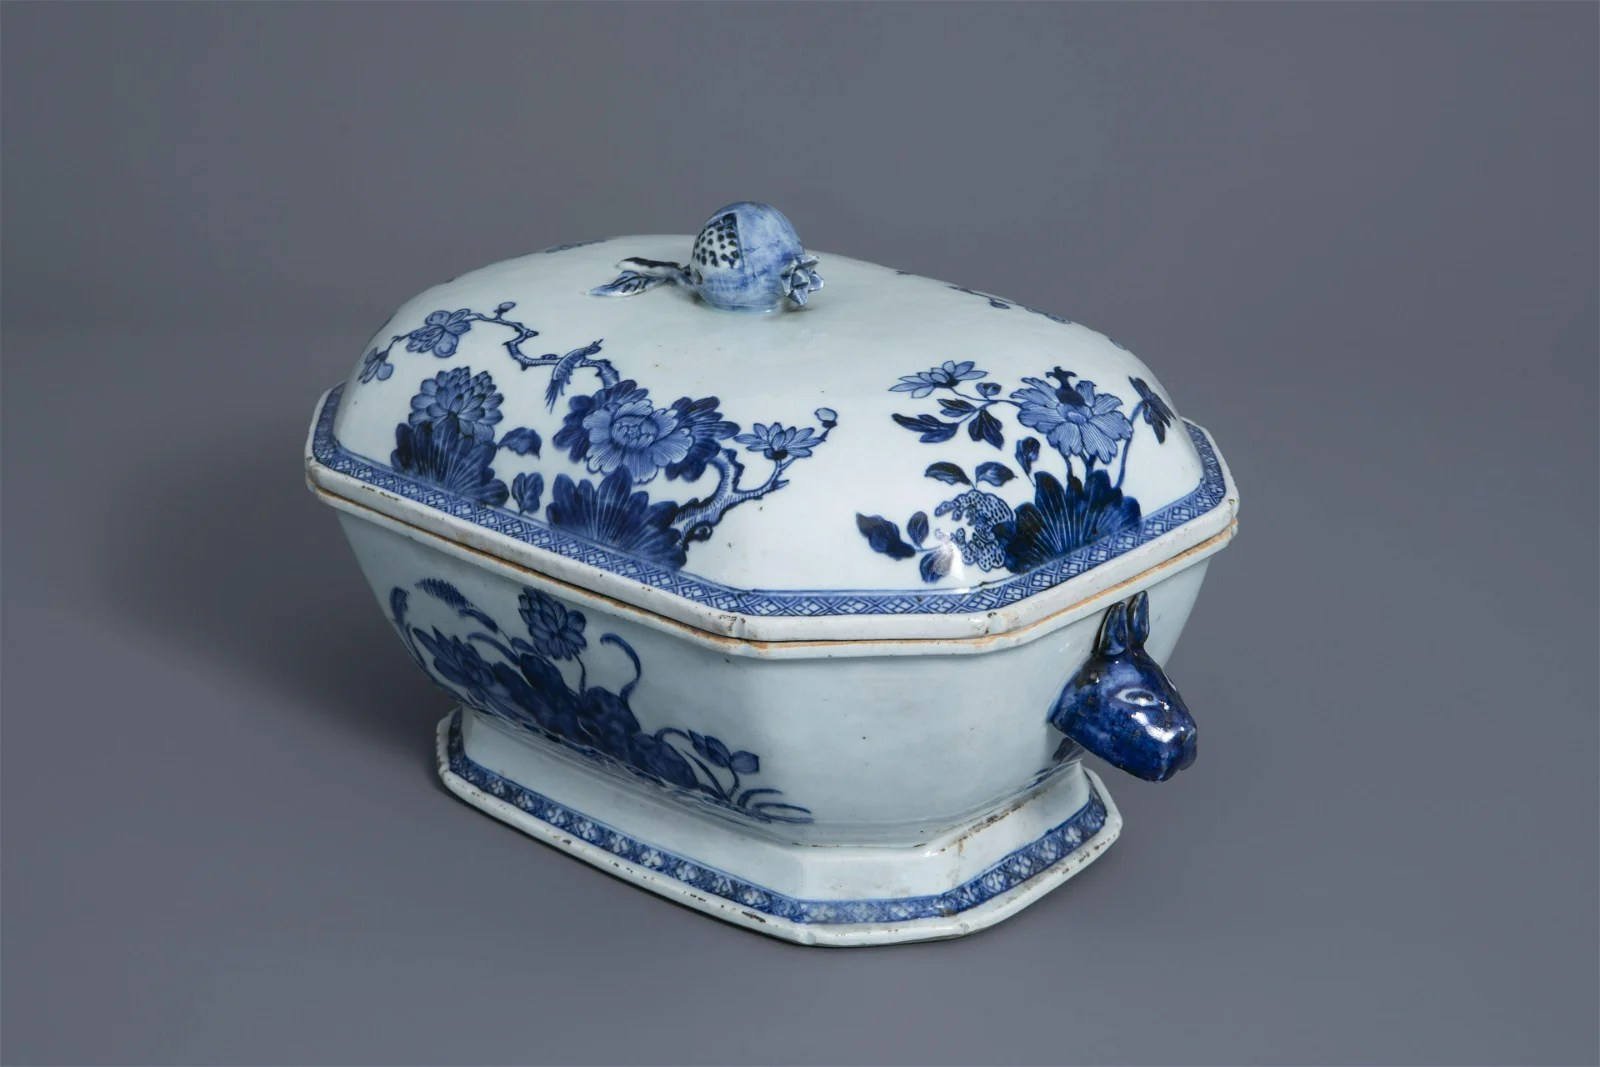 A Chinese blue and white tureen and cover with floral